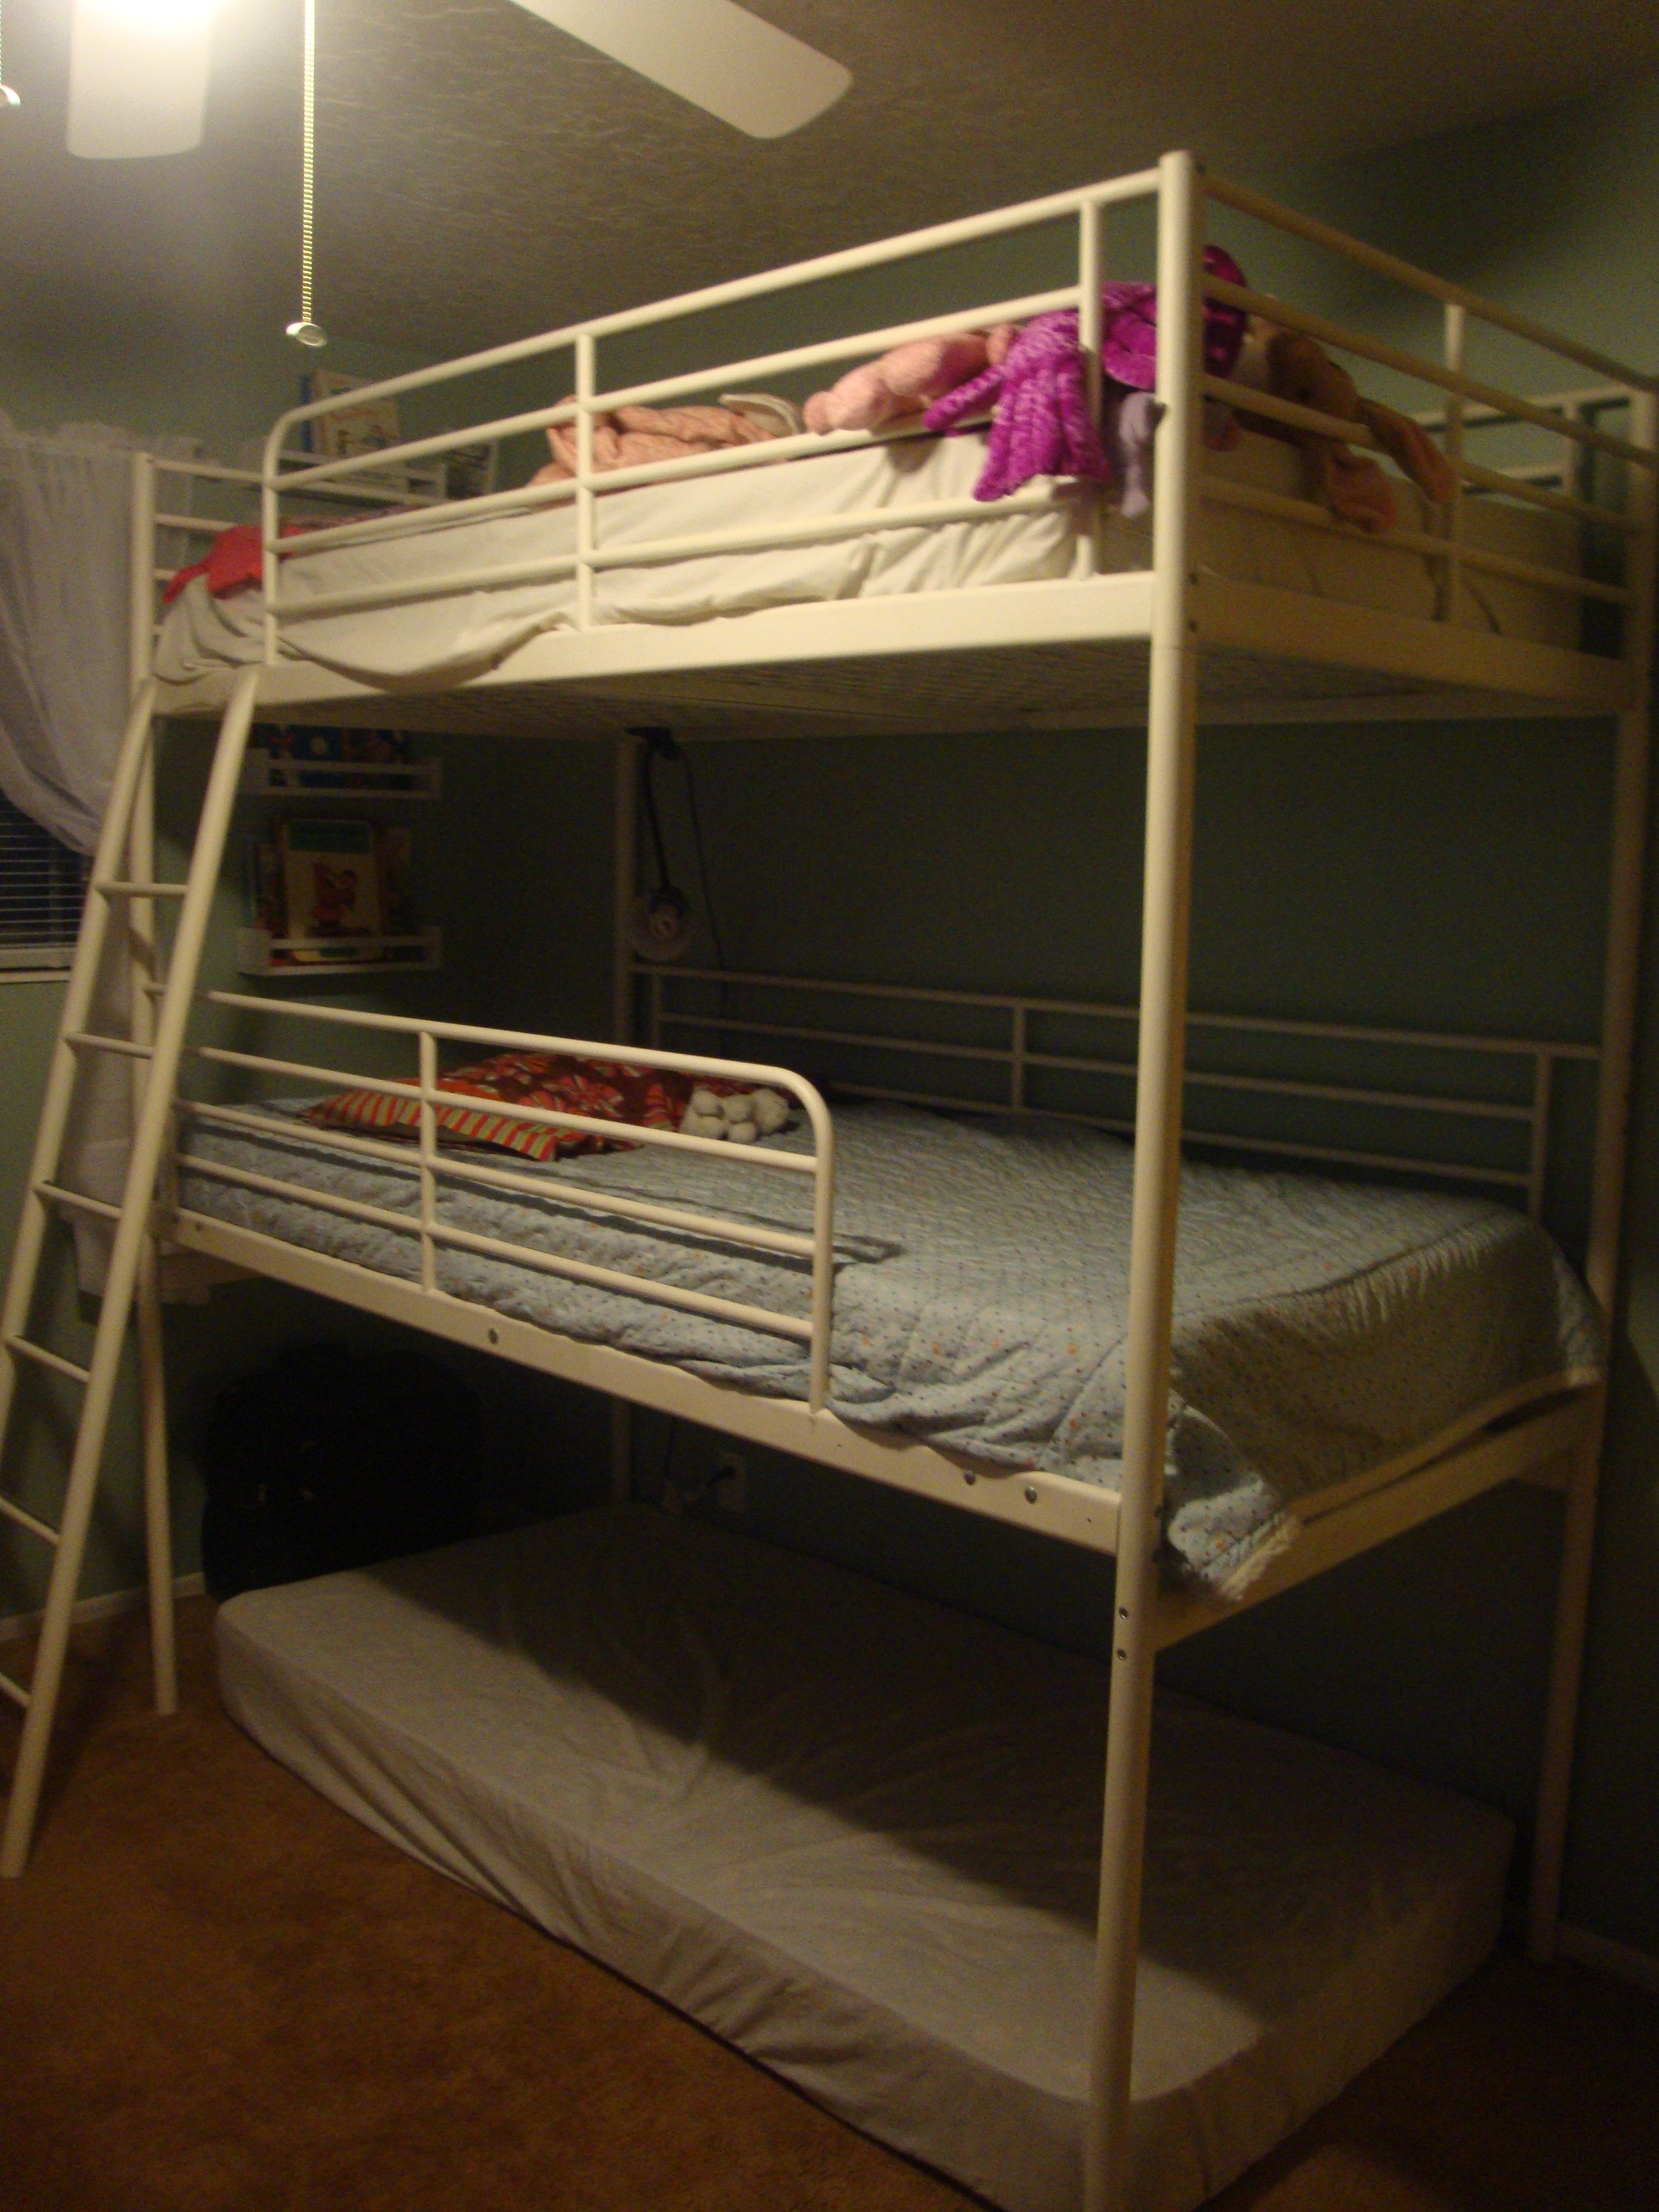 Diy Triple Bunk Bed 2 Ikea Loft Beds Home Bedrooms Triple Bunk Beds Bunk Beds Kids Bunk Beds